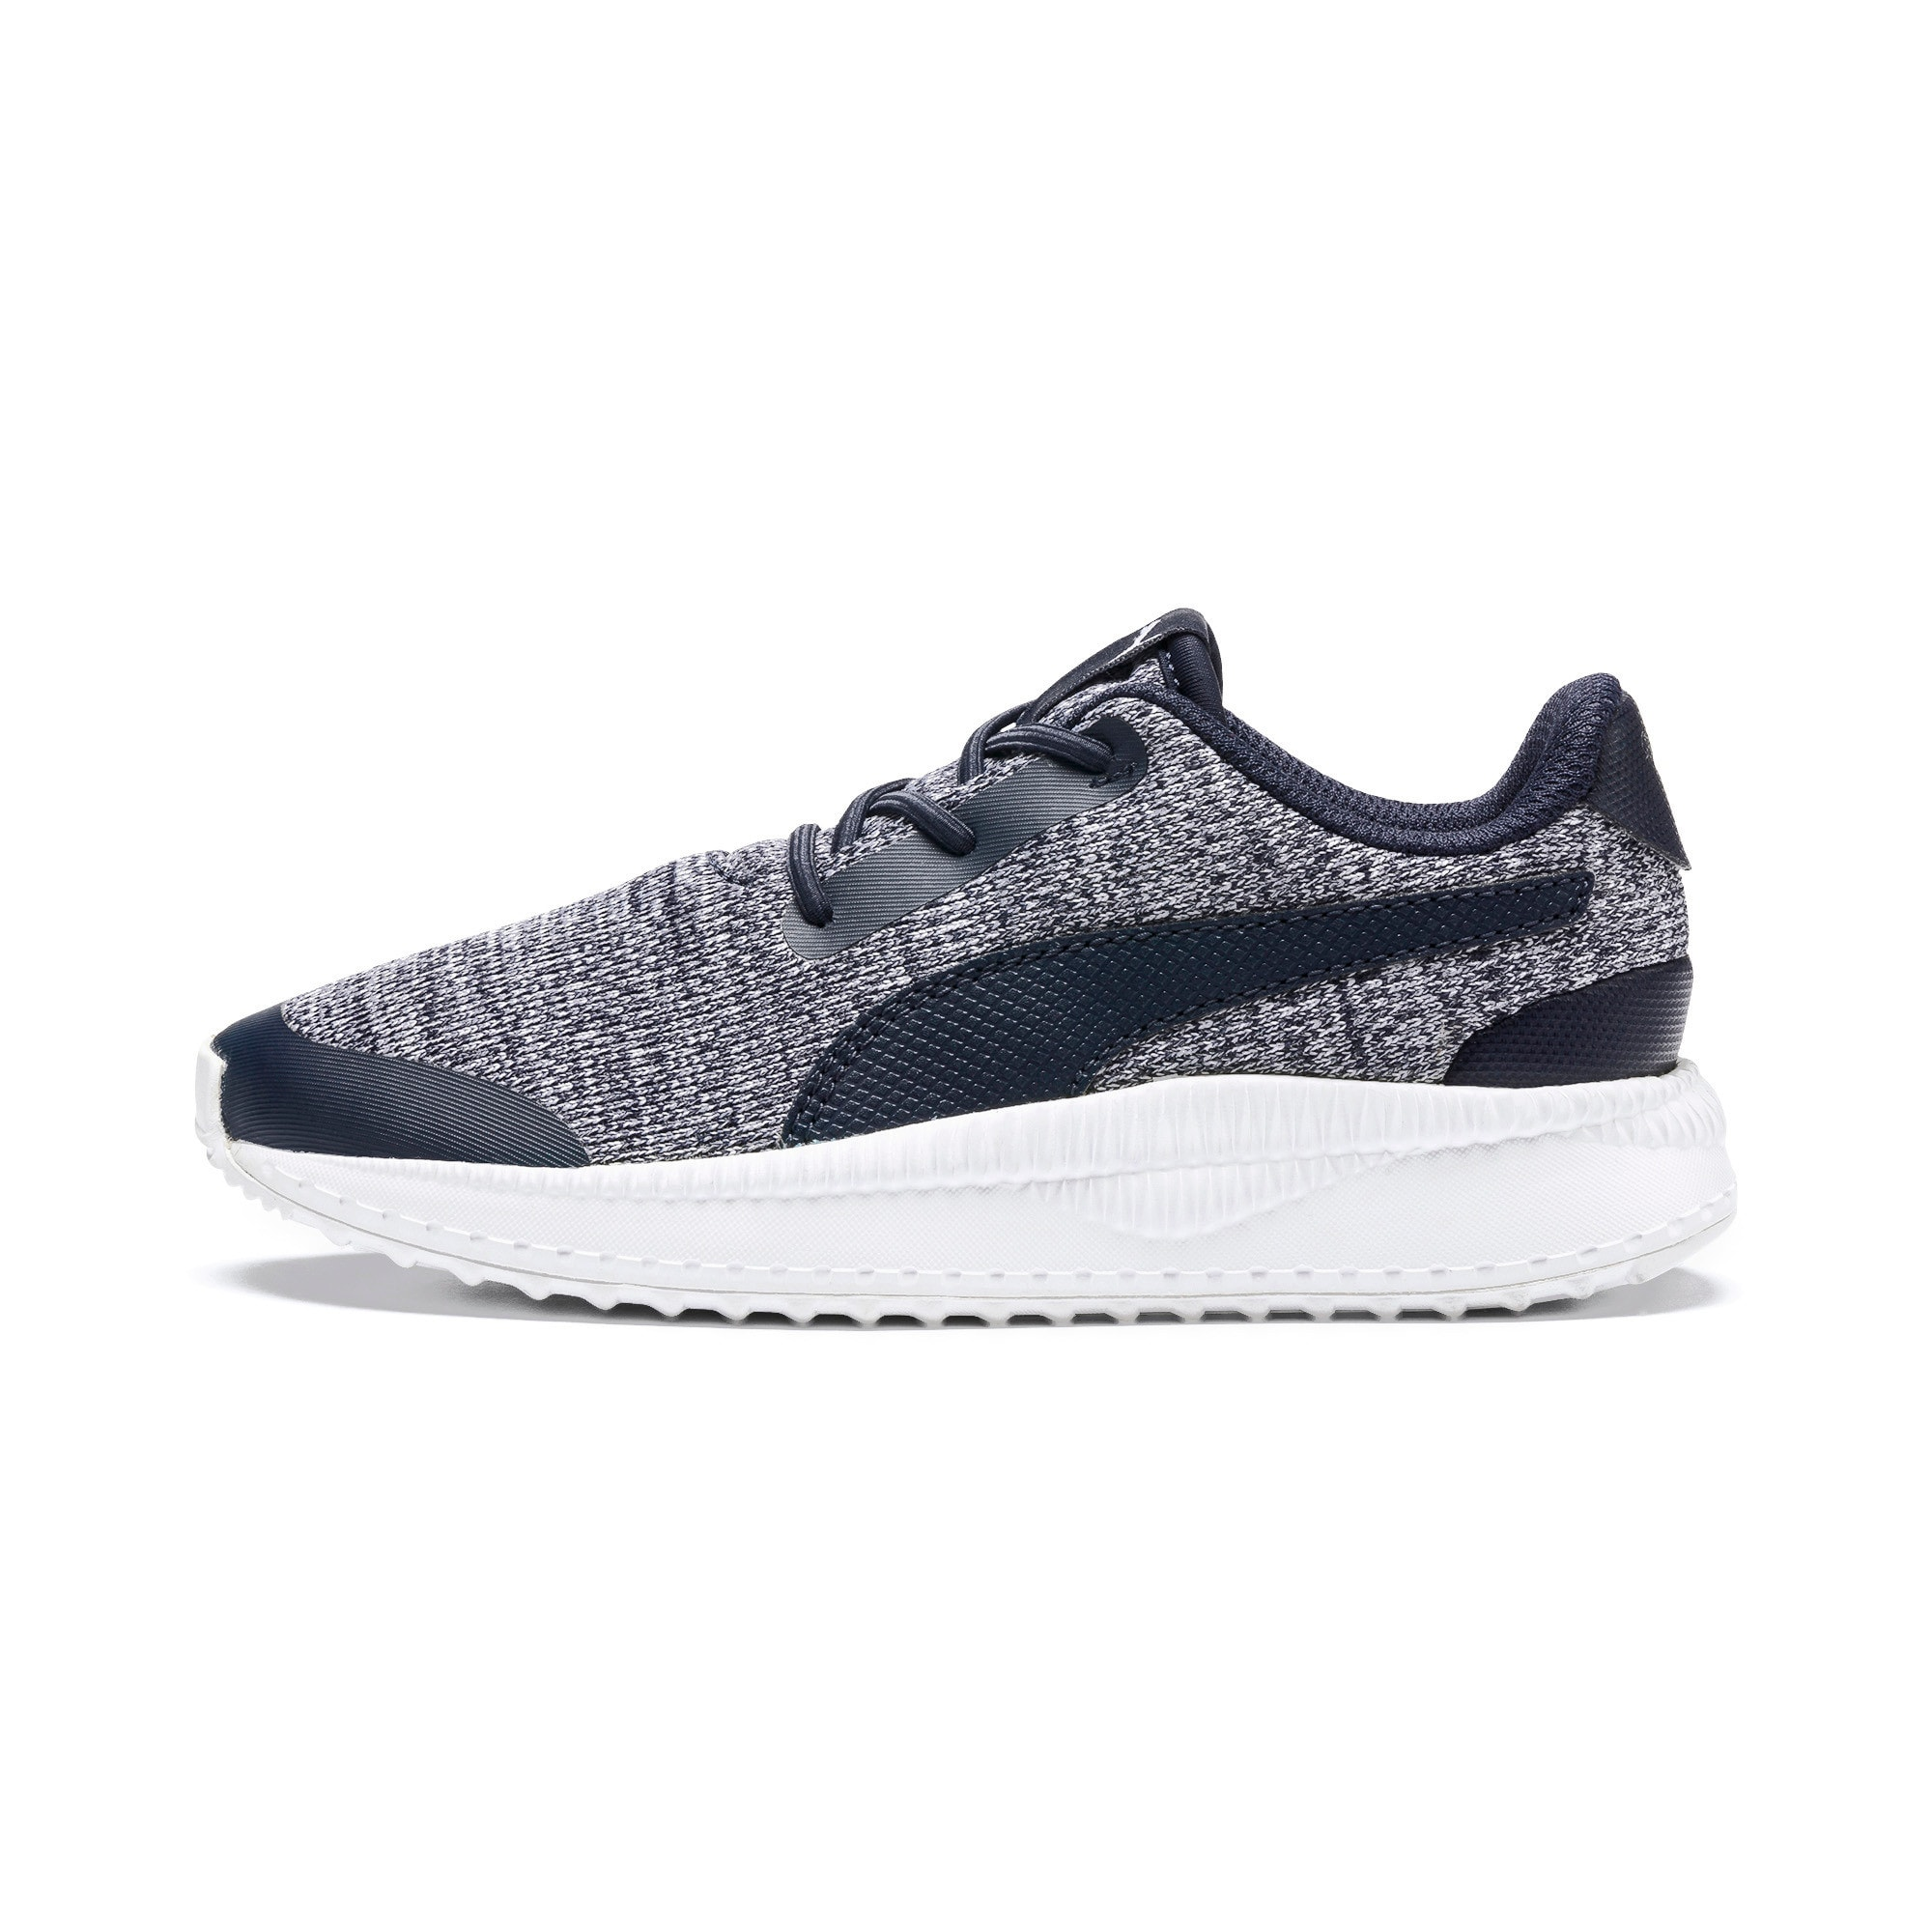 Thumbnail 1 of Pacer Next FS Knit AC Kids' Trainers, Peacoat-Puma White, medium-IND